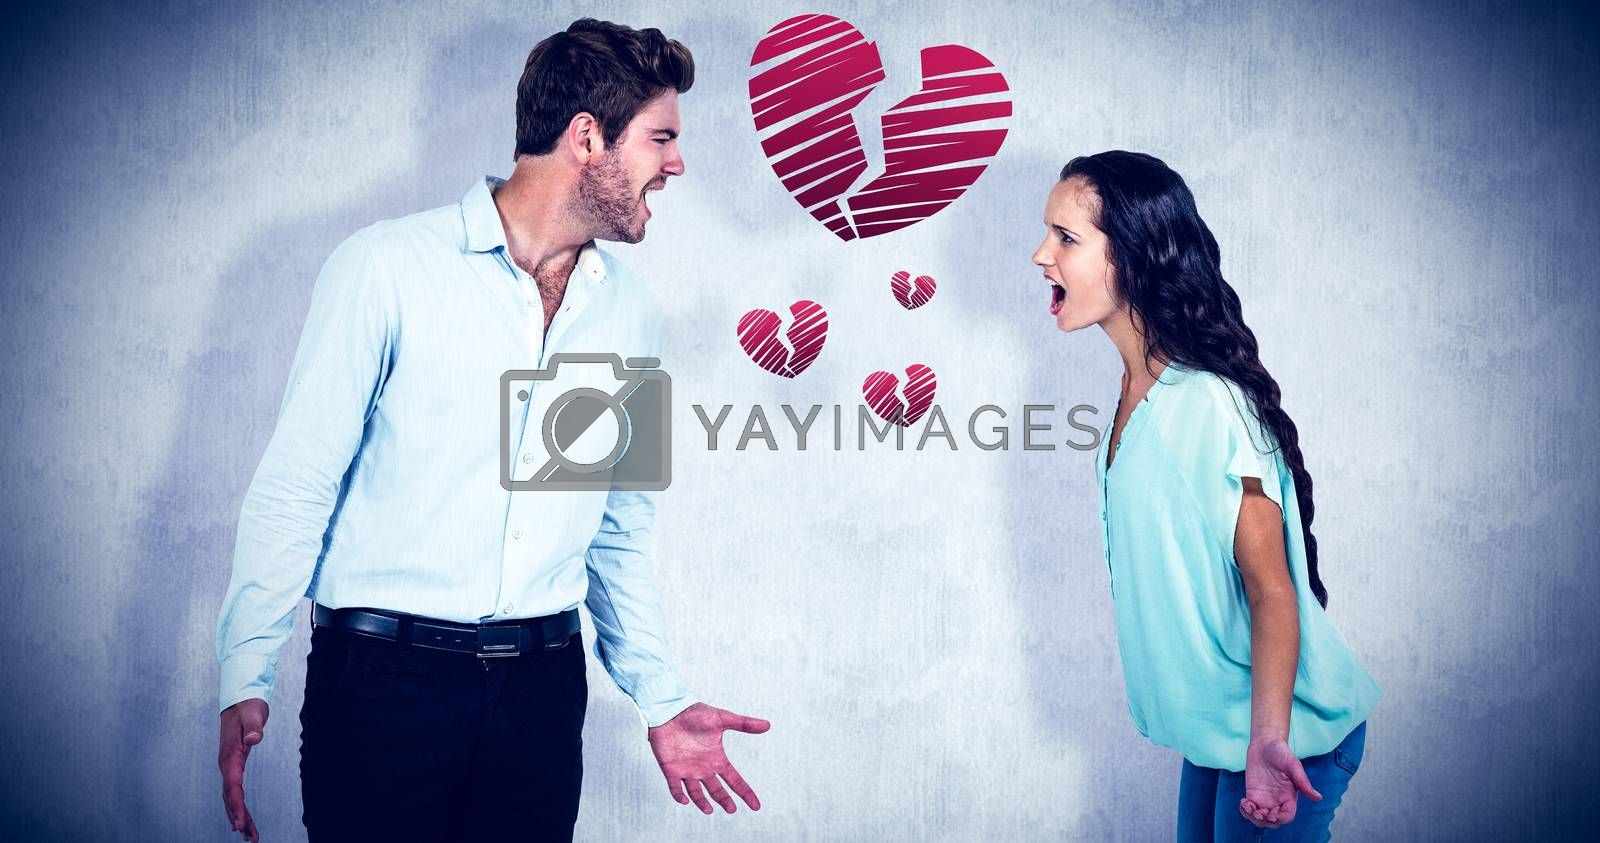 Composite image of screaming couple having argument by Wavebreakmedia